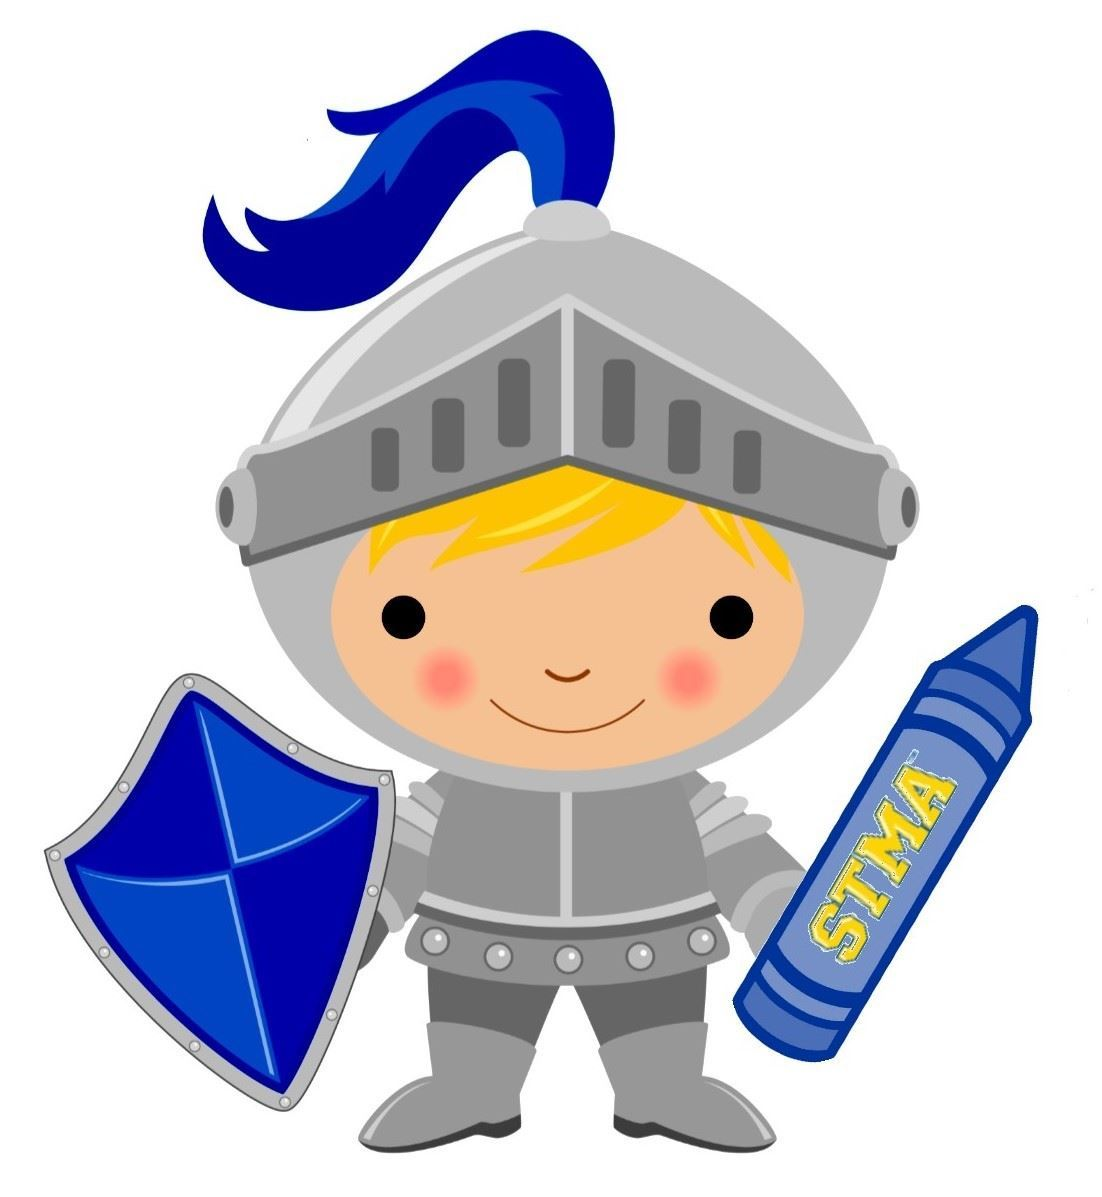 Child knight in armour holding a crayon with STMA on it